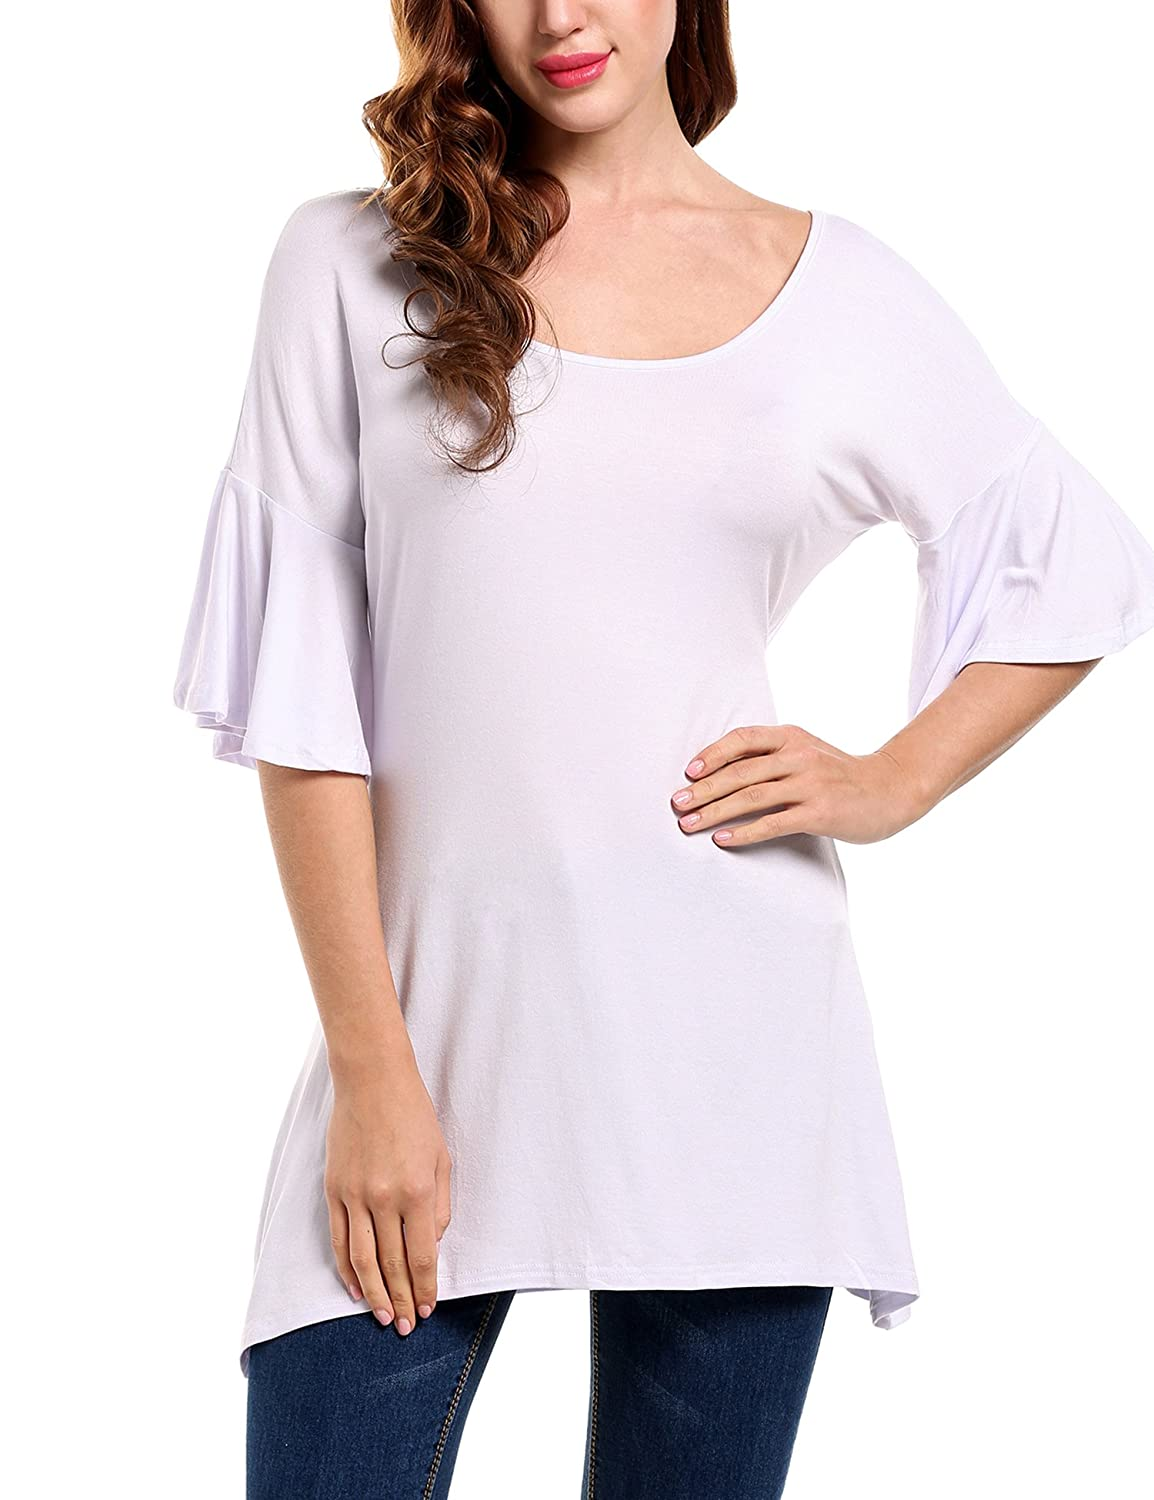 Meaneor Women's Casual 3/4 Flared Sleeve Scoop Neck Solid Loose Fit Tunic Tops #MAH013394